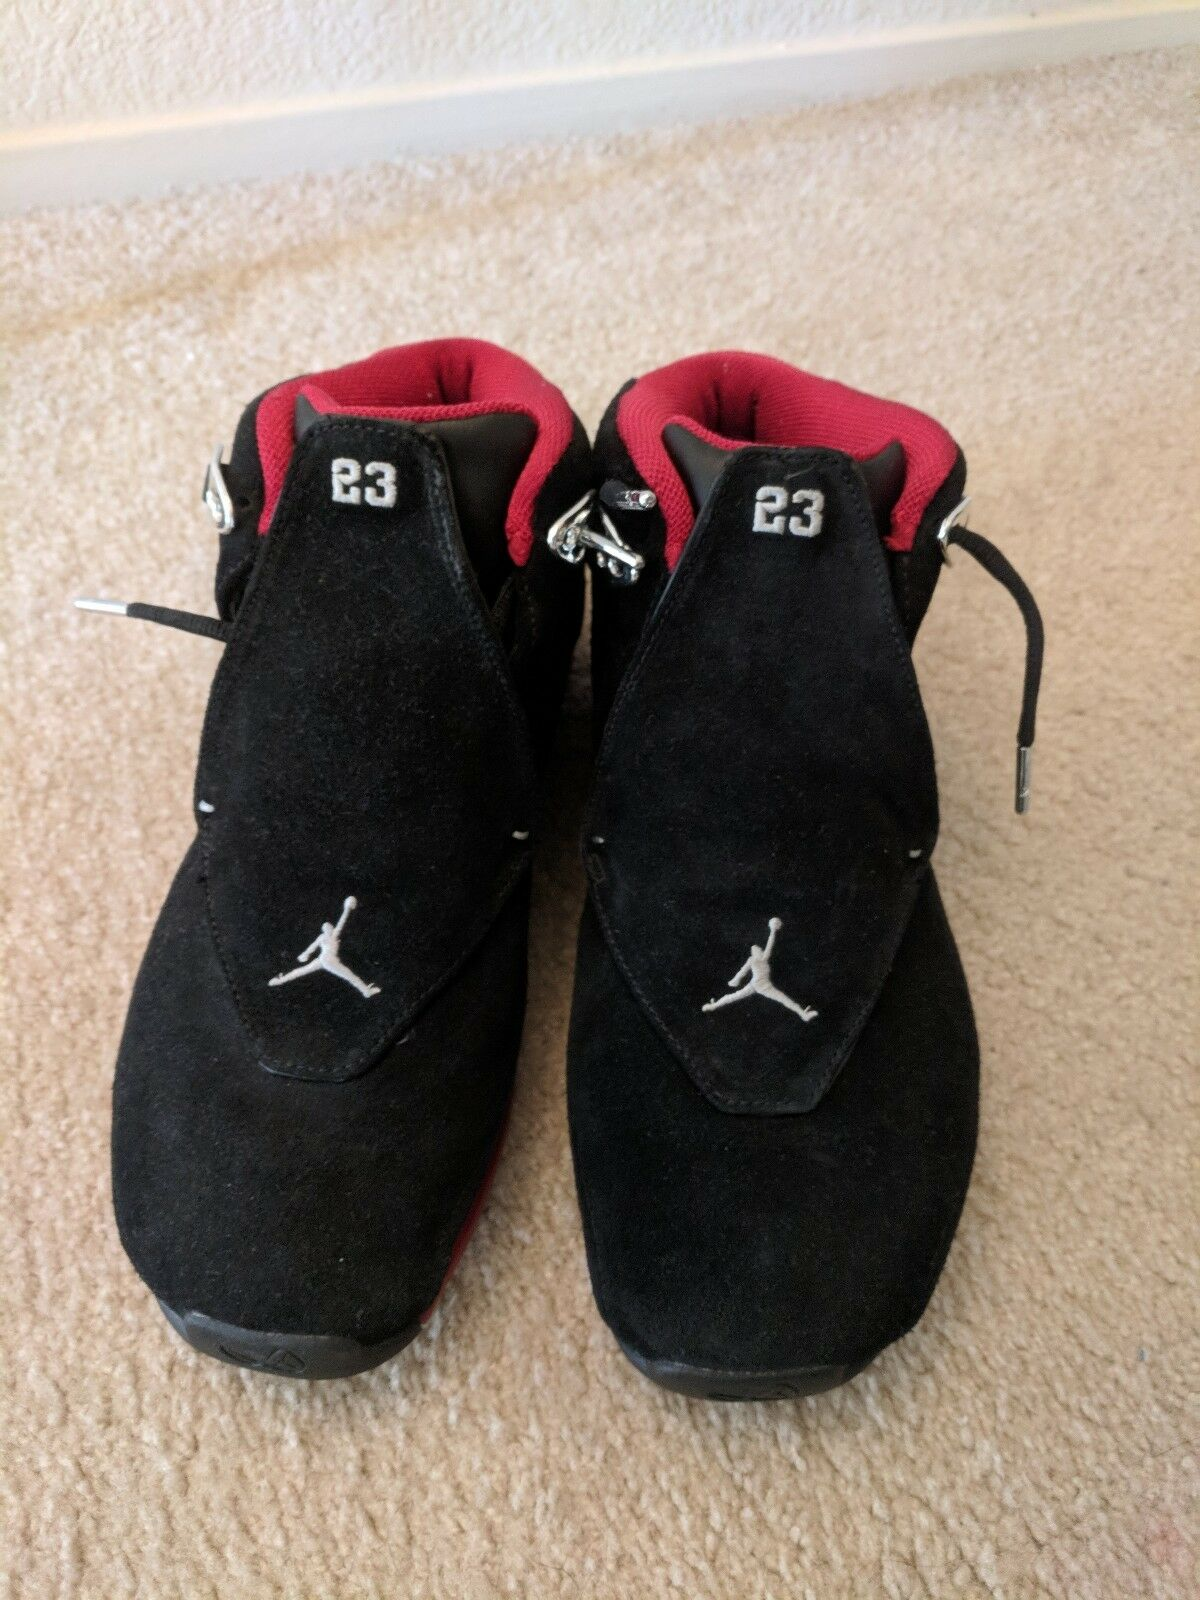 Men's/Women's Air Jordan 18 BRED pre-owned 10.5 10.5 10.5 Easy to use luxurious Brand feast 13a20b